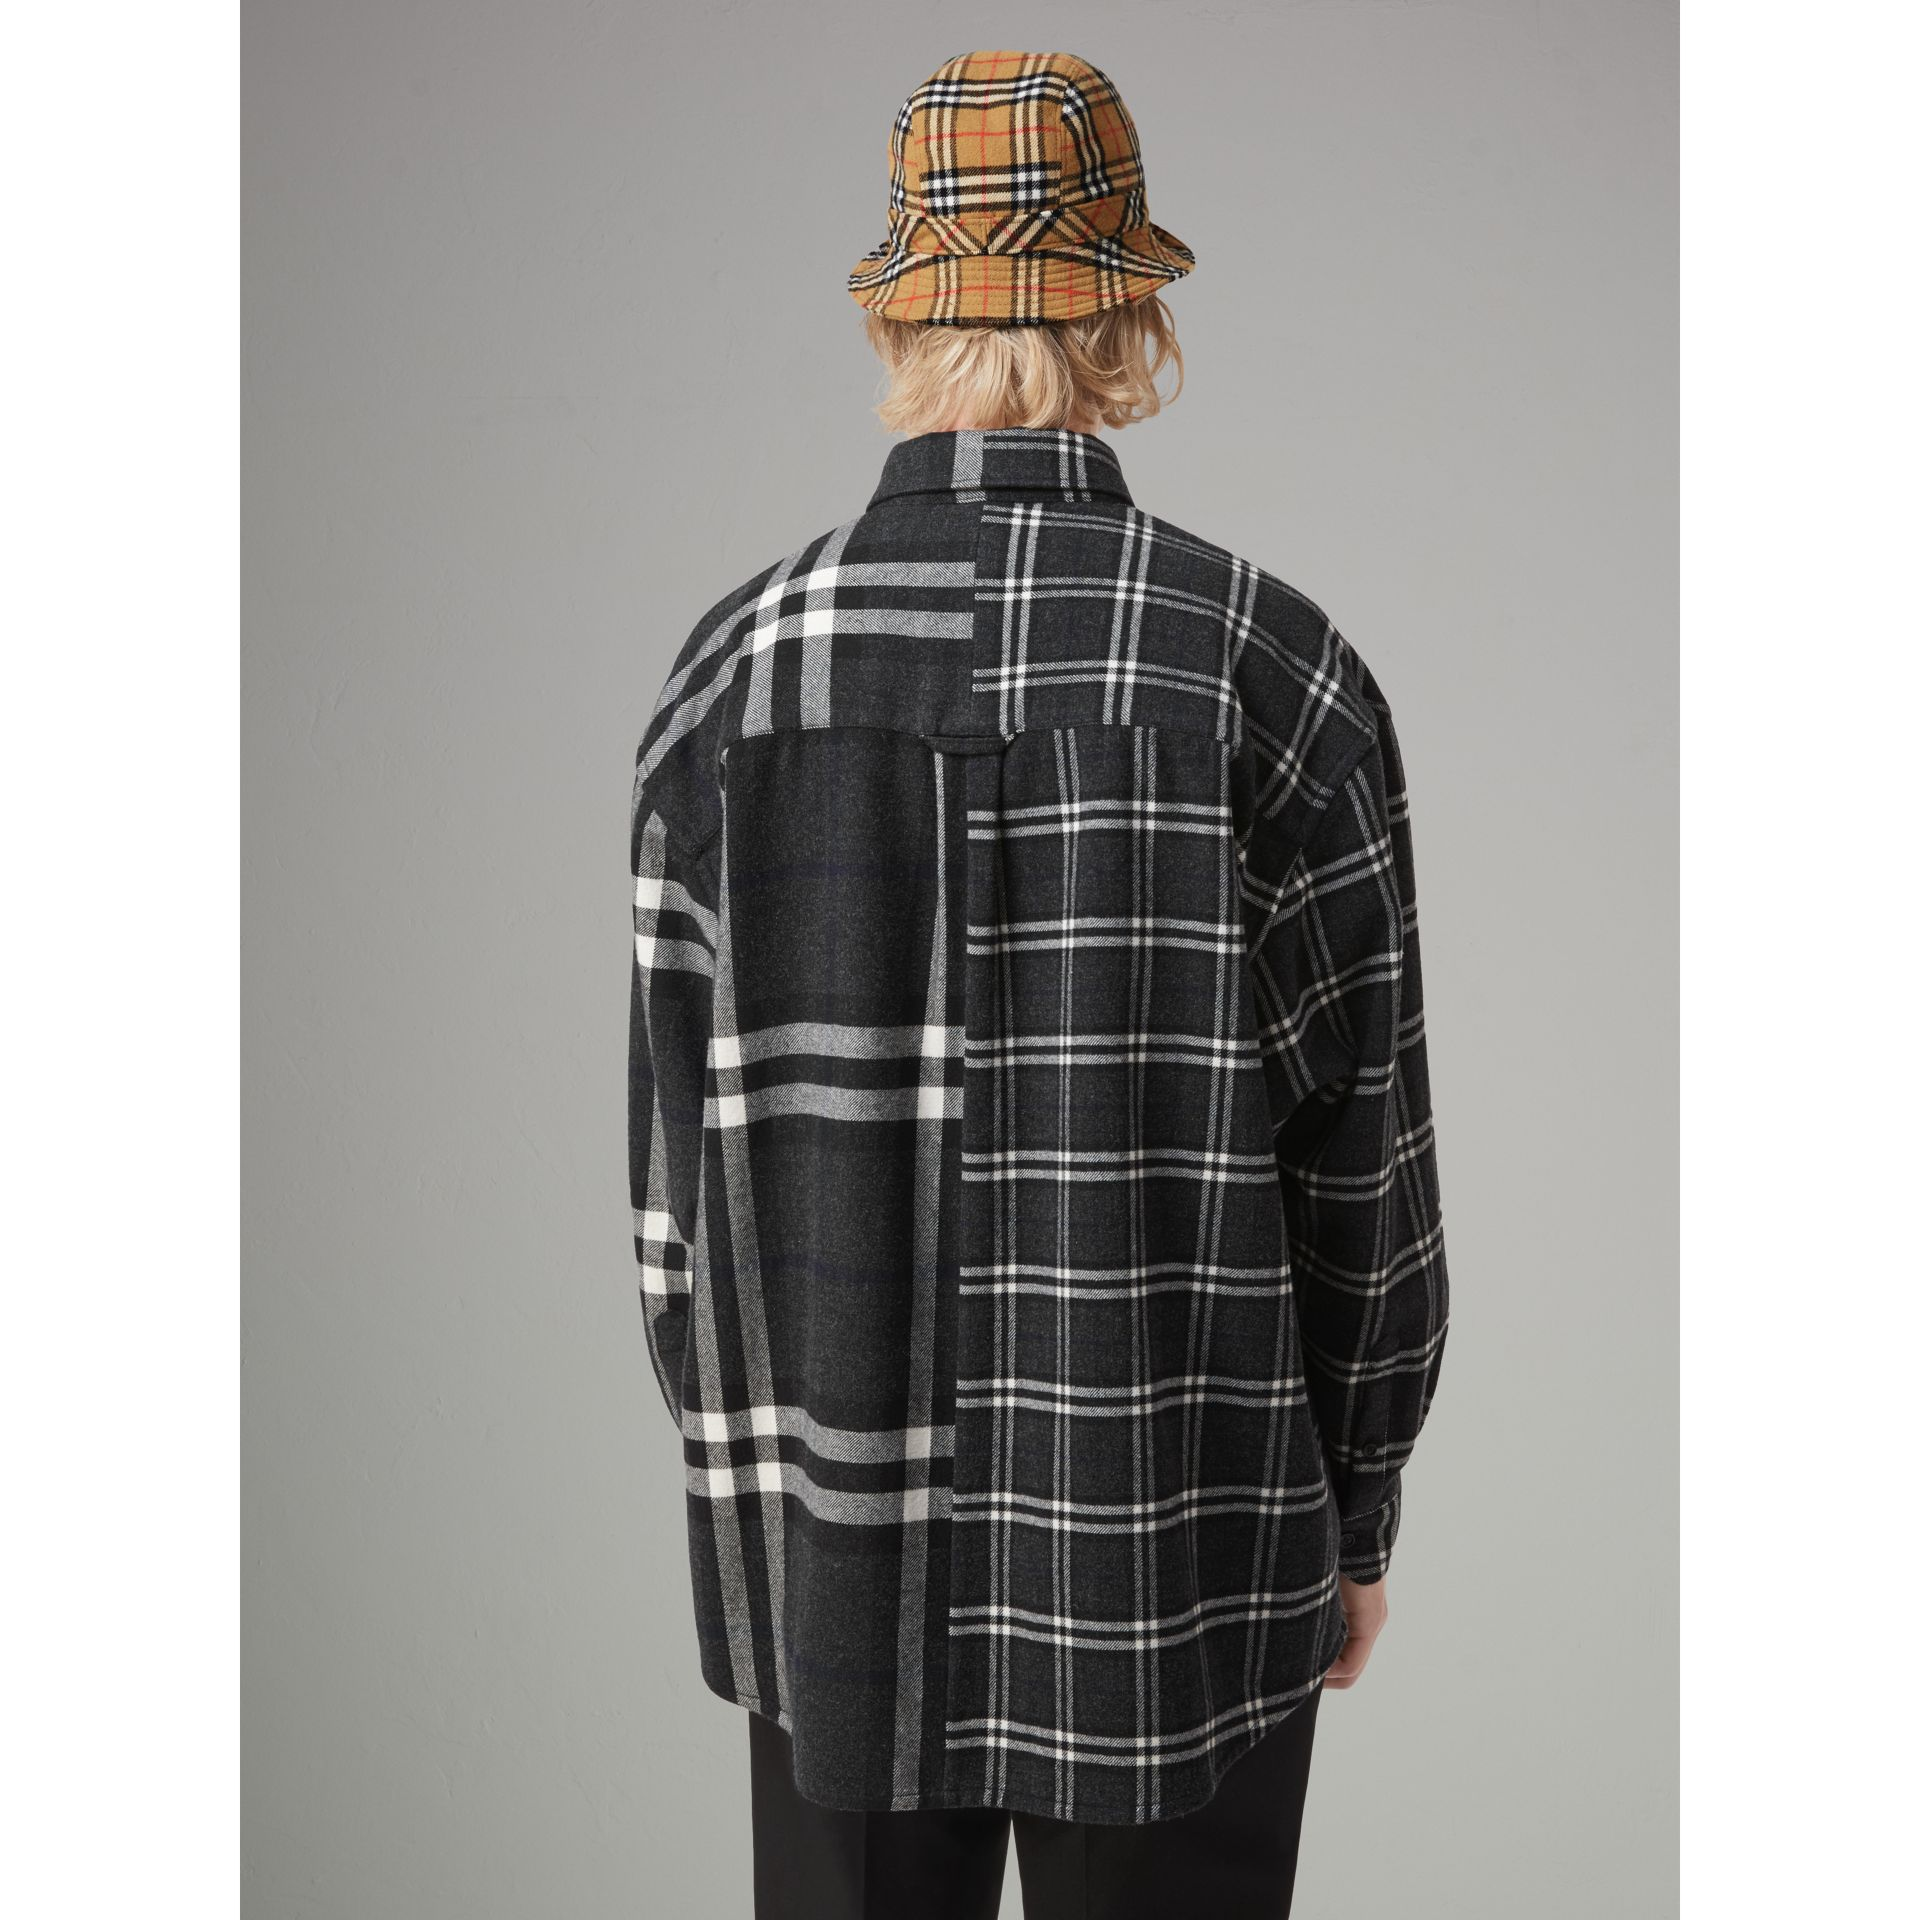 Gosha x Burberry Check Flannel Shirt in Charcoal | Burberry United States - gallery image 6